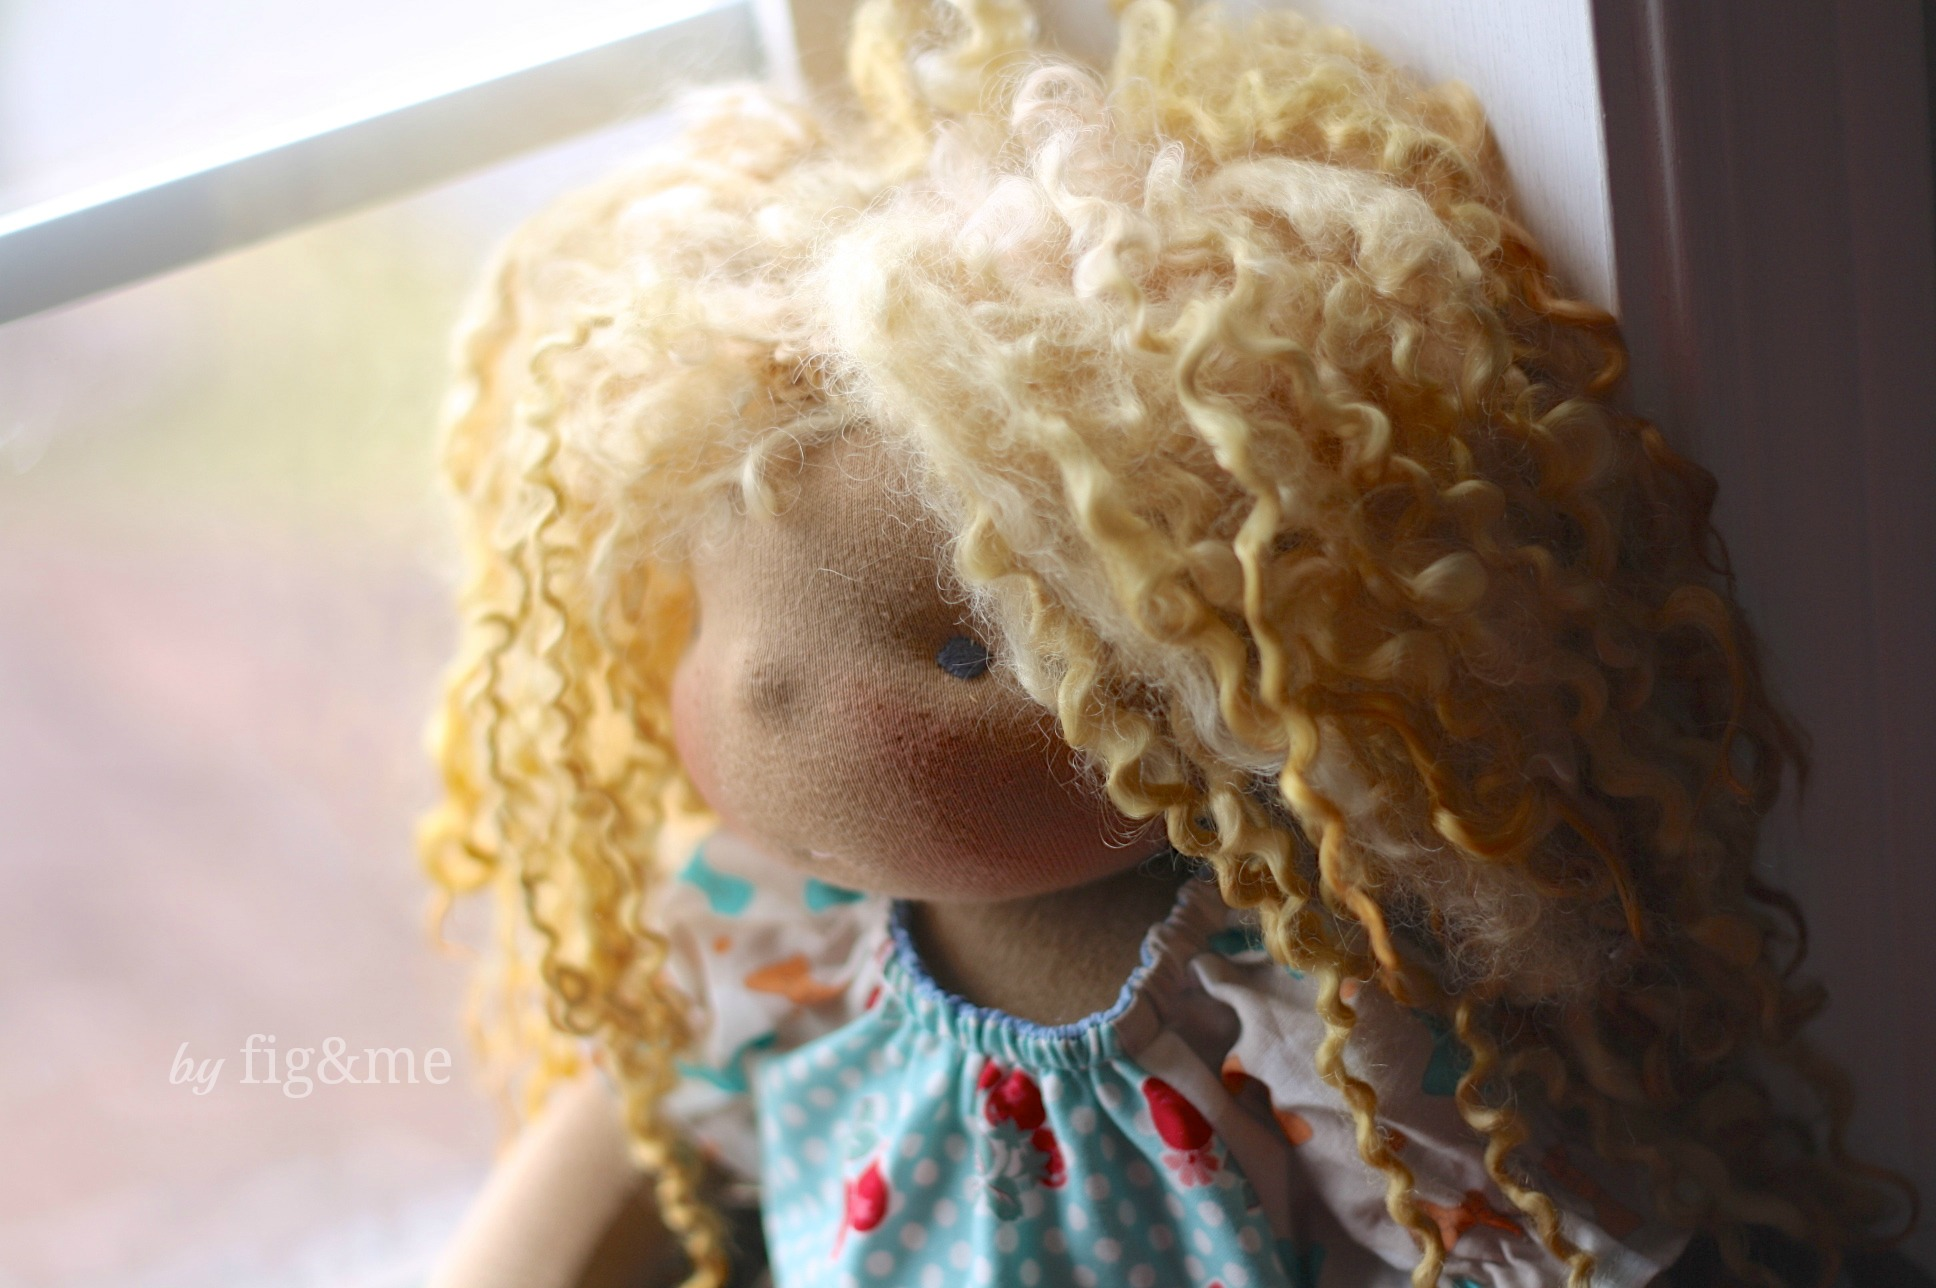 Little Beau, a handmade natural doll, by Fig and me.